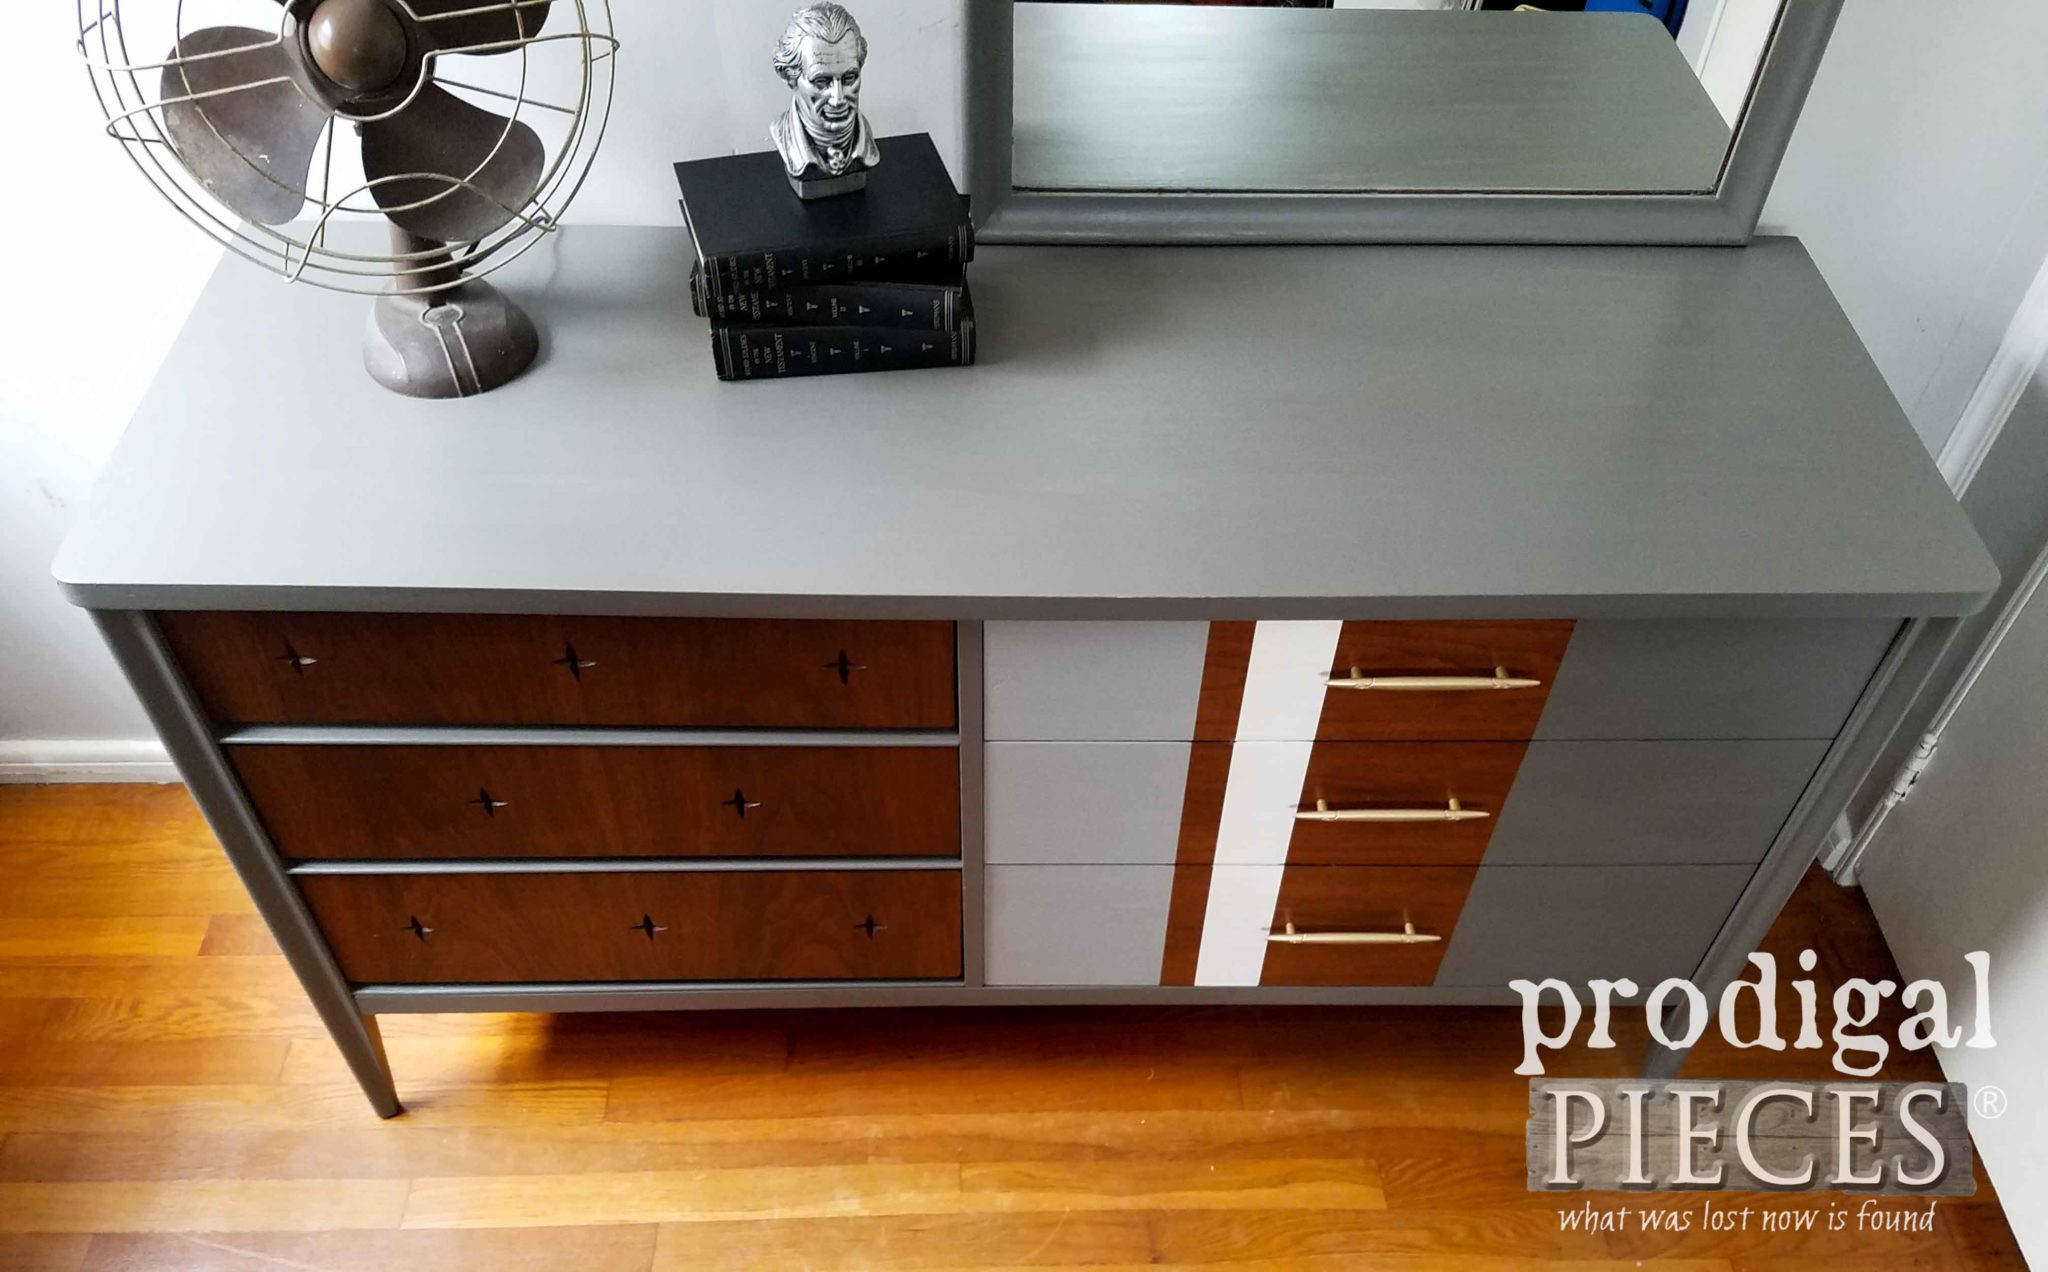 Mid Century Modern Dresser in Dixie Belle Grays and Whites for and Updated Look by Prodigal Pieces | prodigalpieces.com